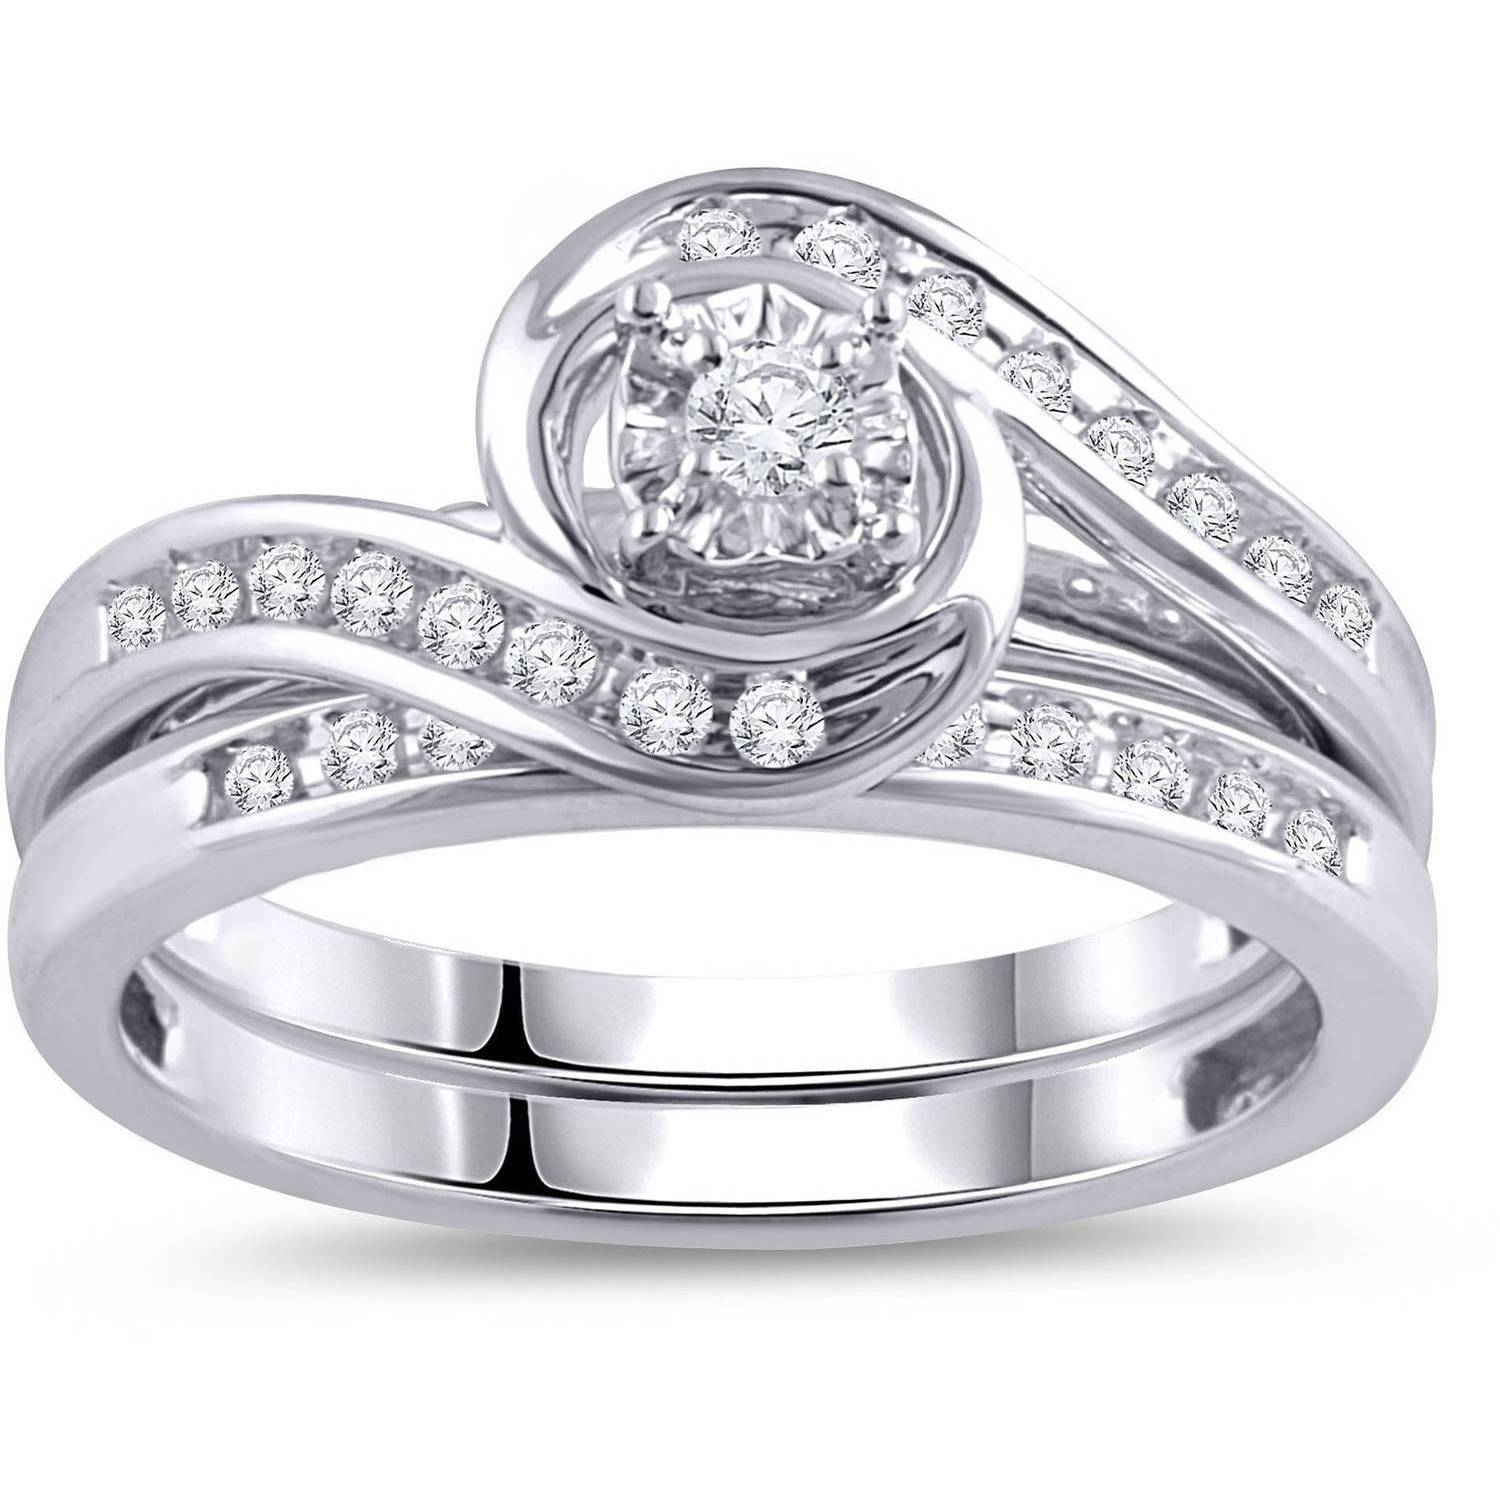 99 cheap silver wedding ring sets ring princess cut